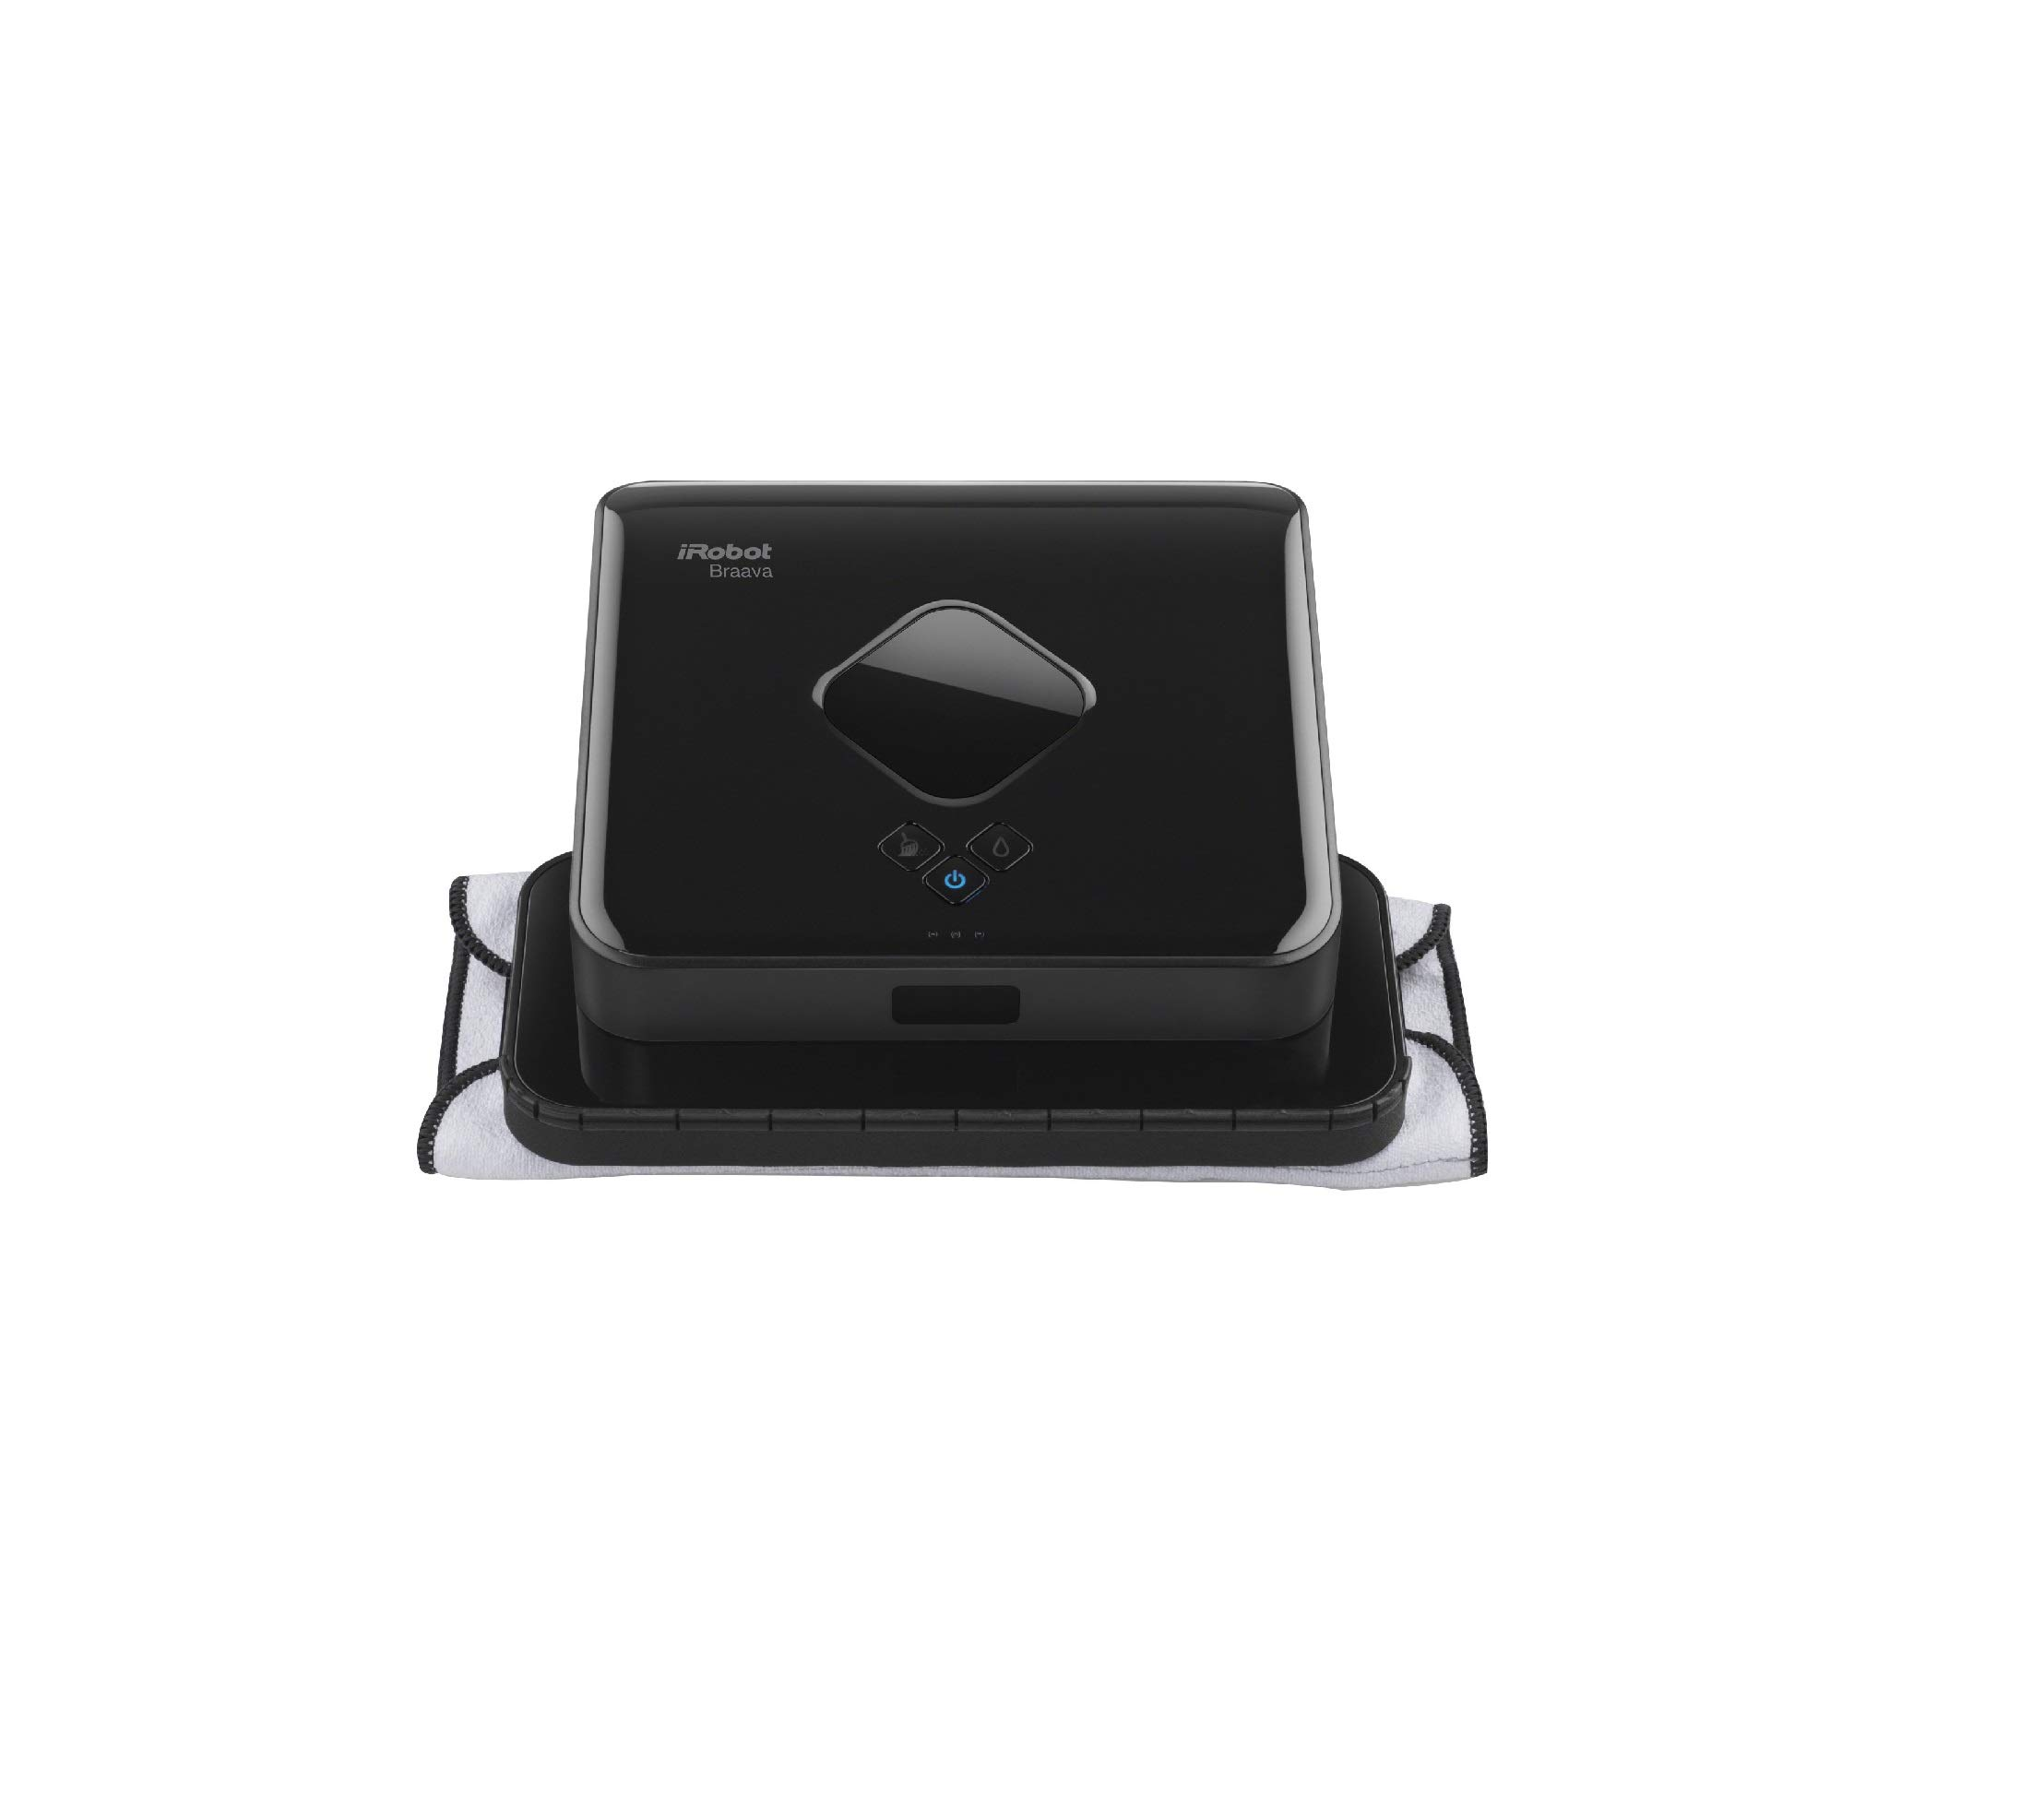 iRobot Braava 380t Advanced Robot Mop- Wet Mopping and Dry Sweeping cleaning modes, large spaces by iRobot